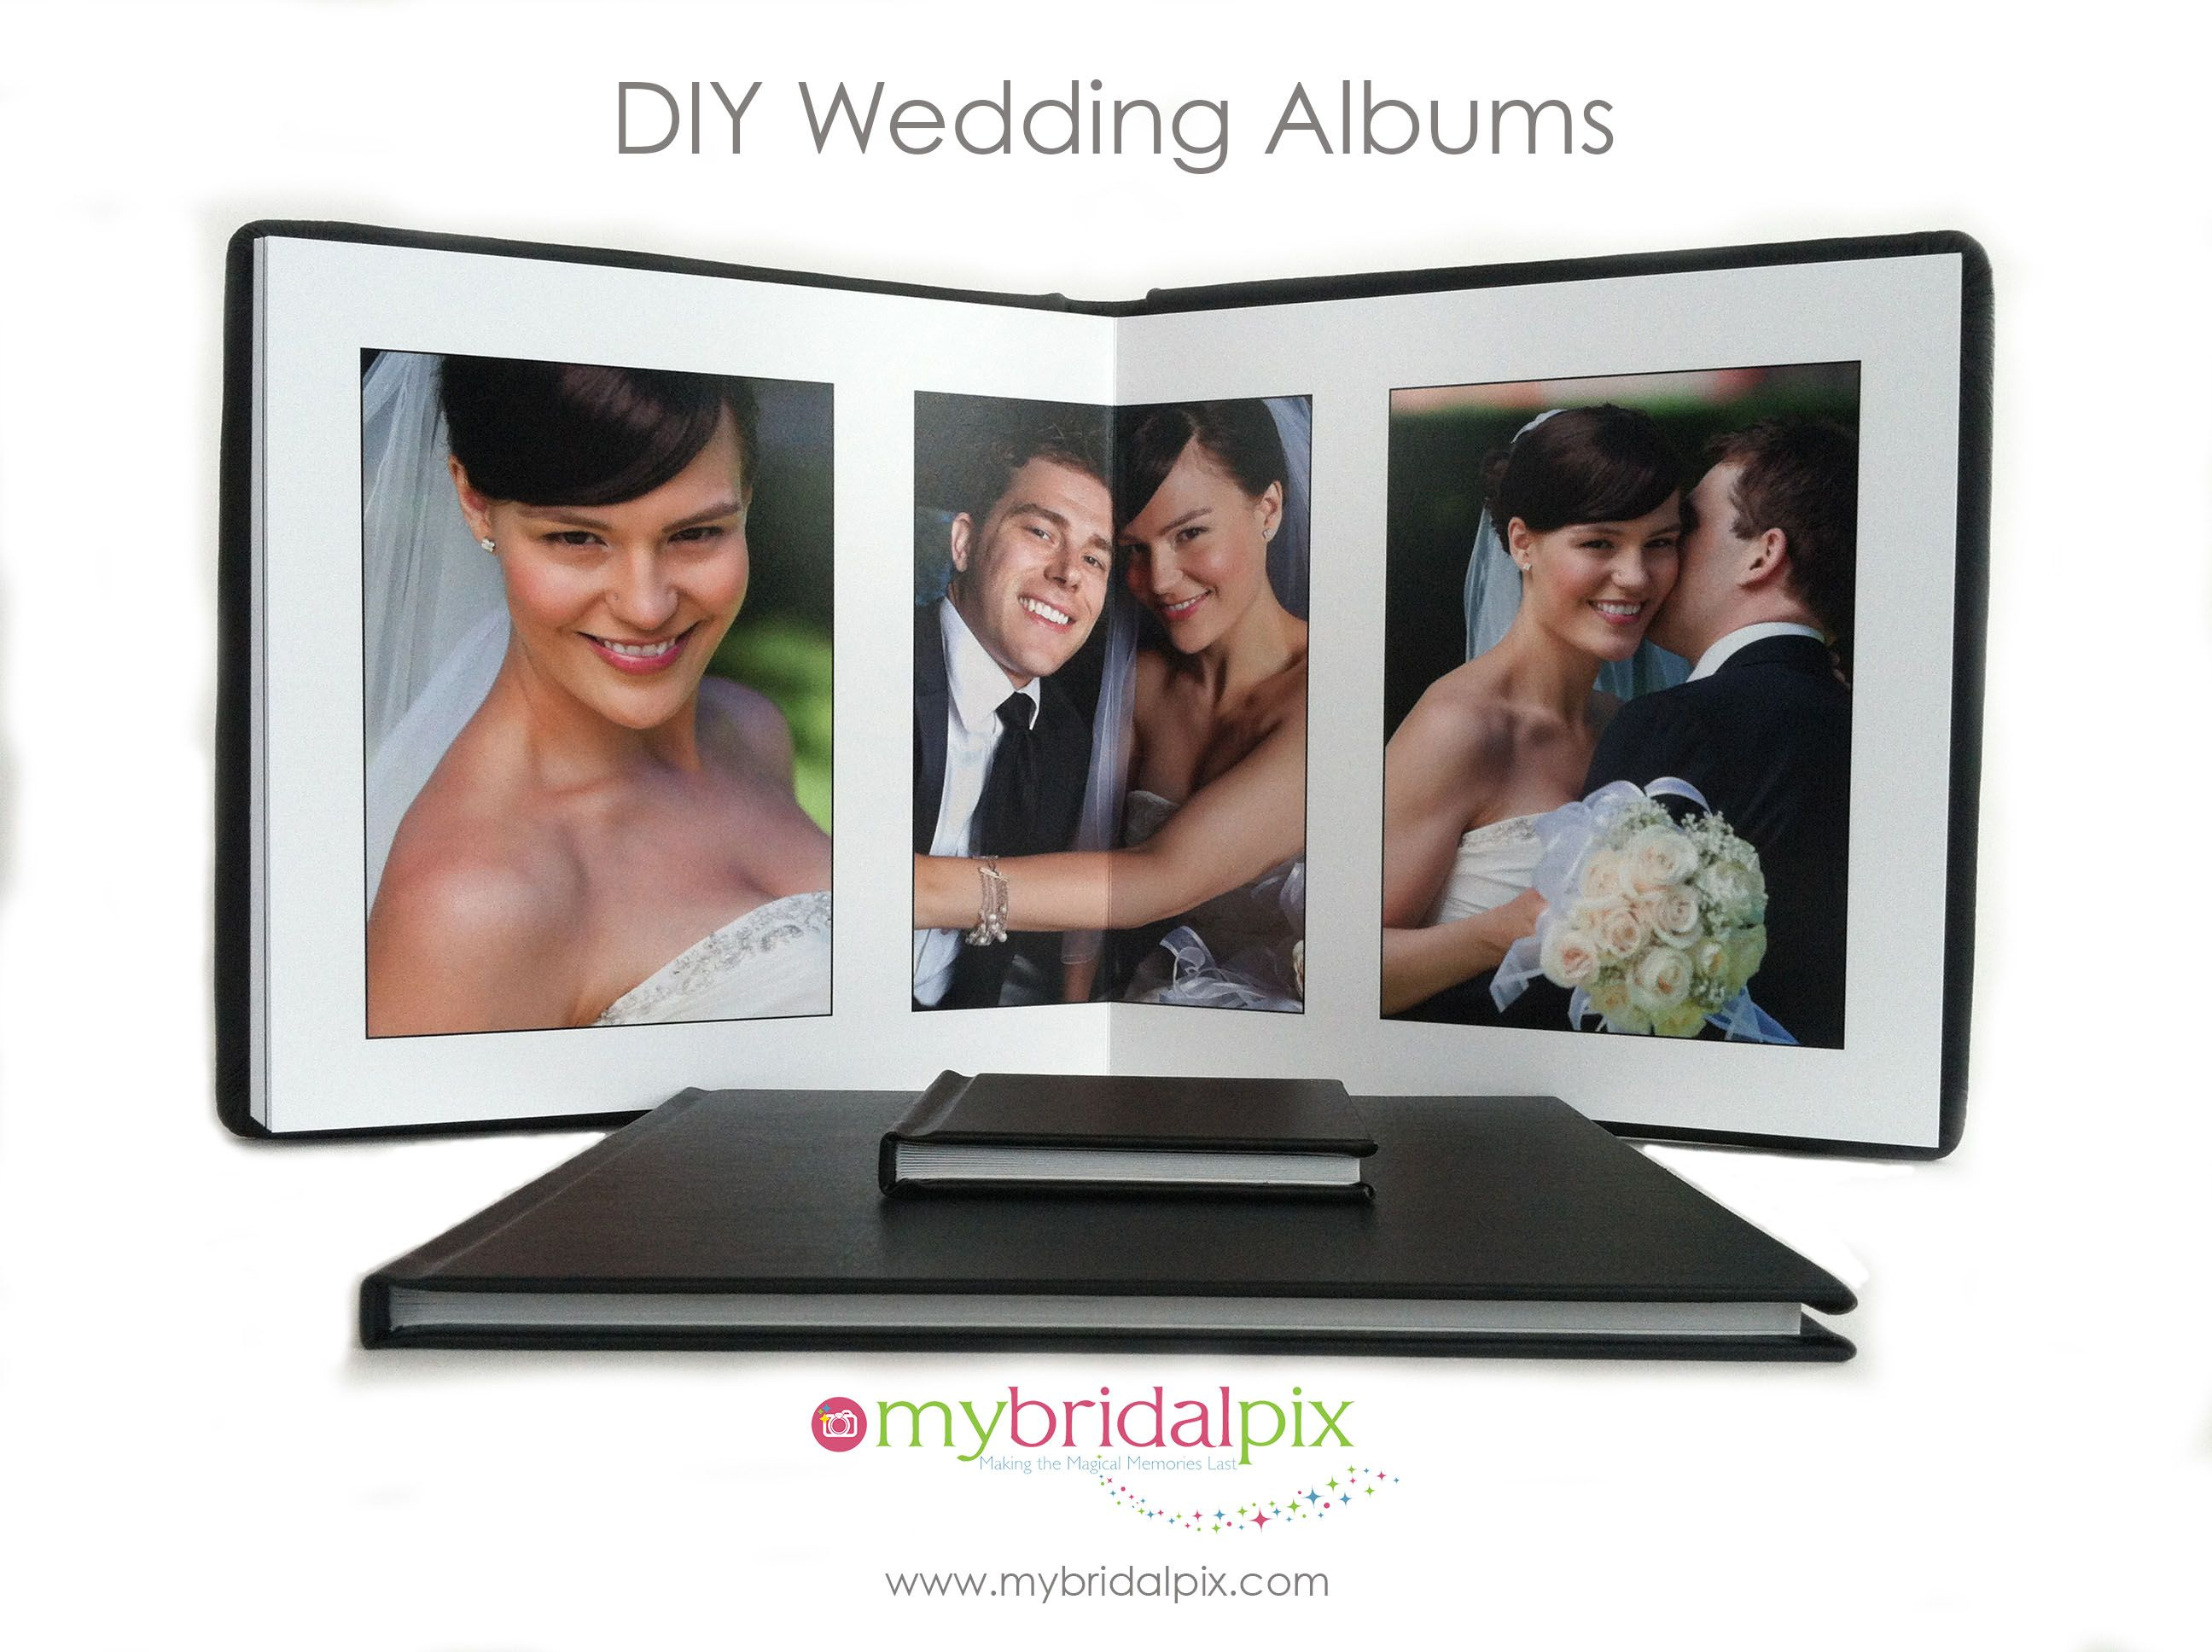 Bridalpix make your own wedding album and save over